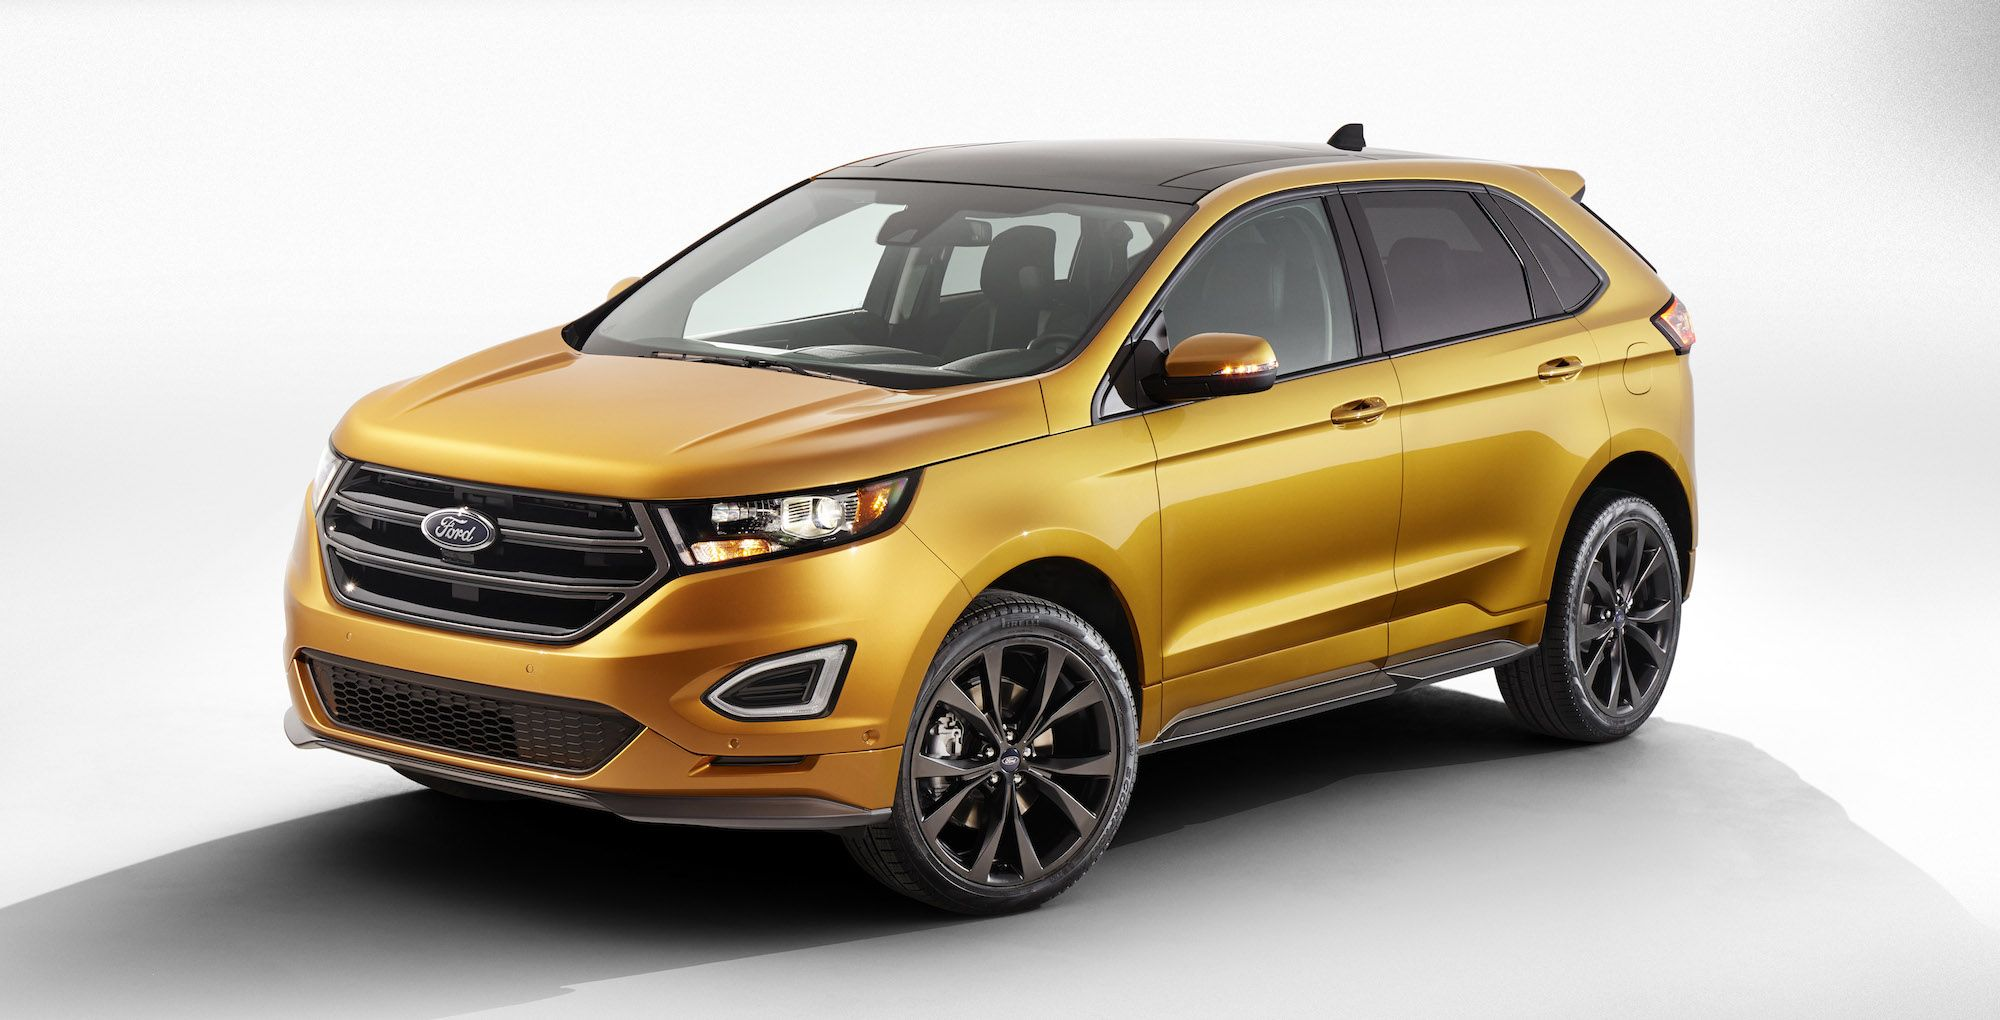 2015 Ford Edge Territory replacement revealed